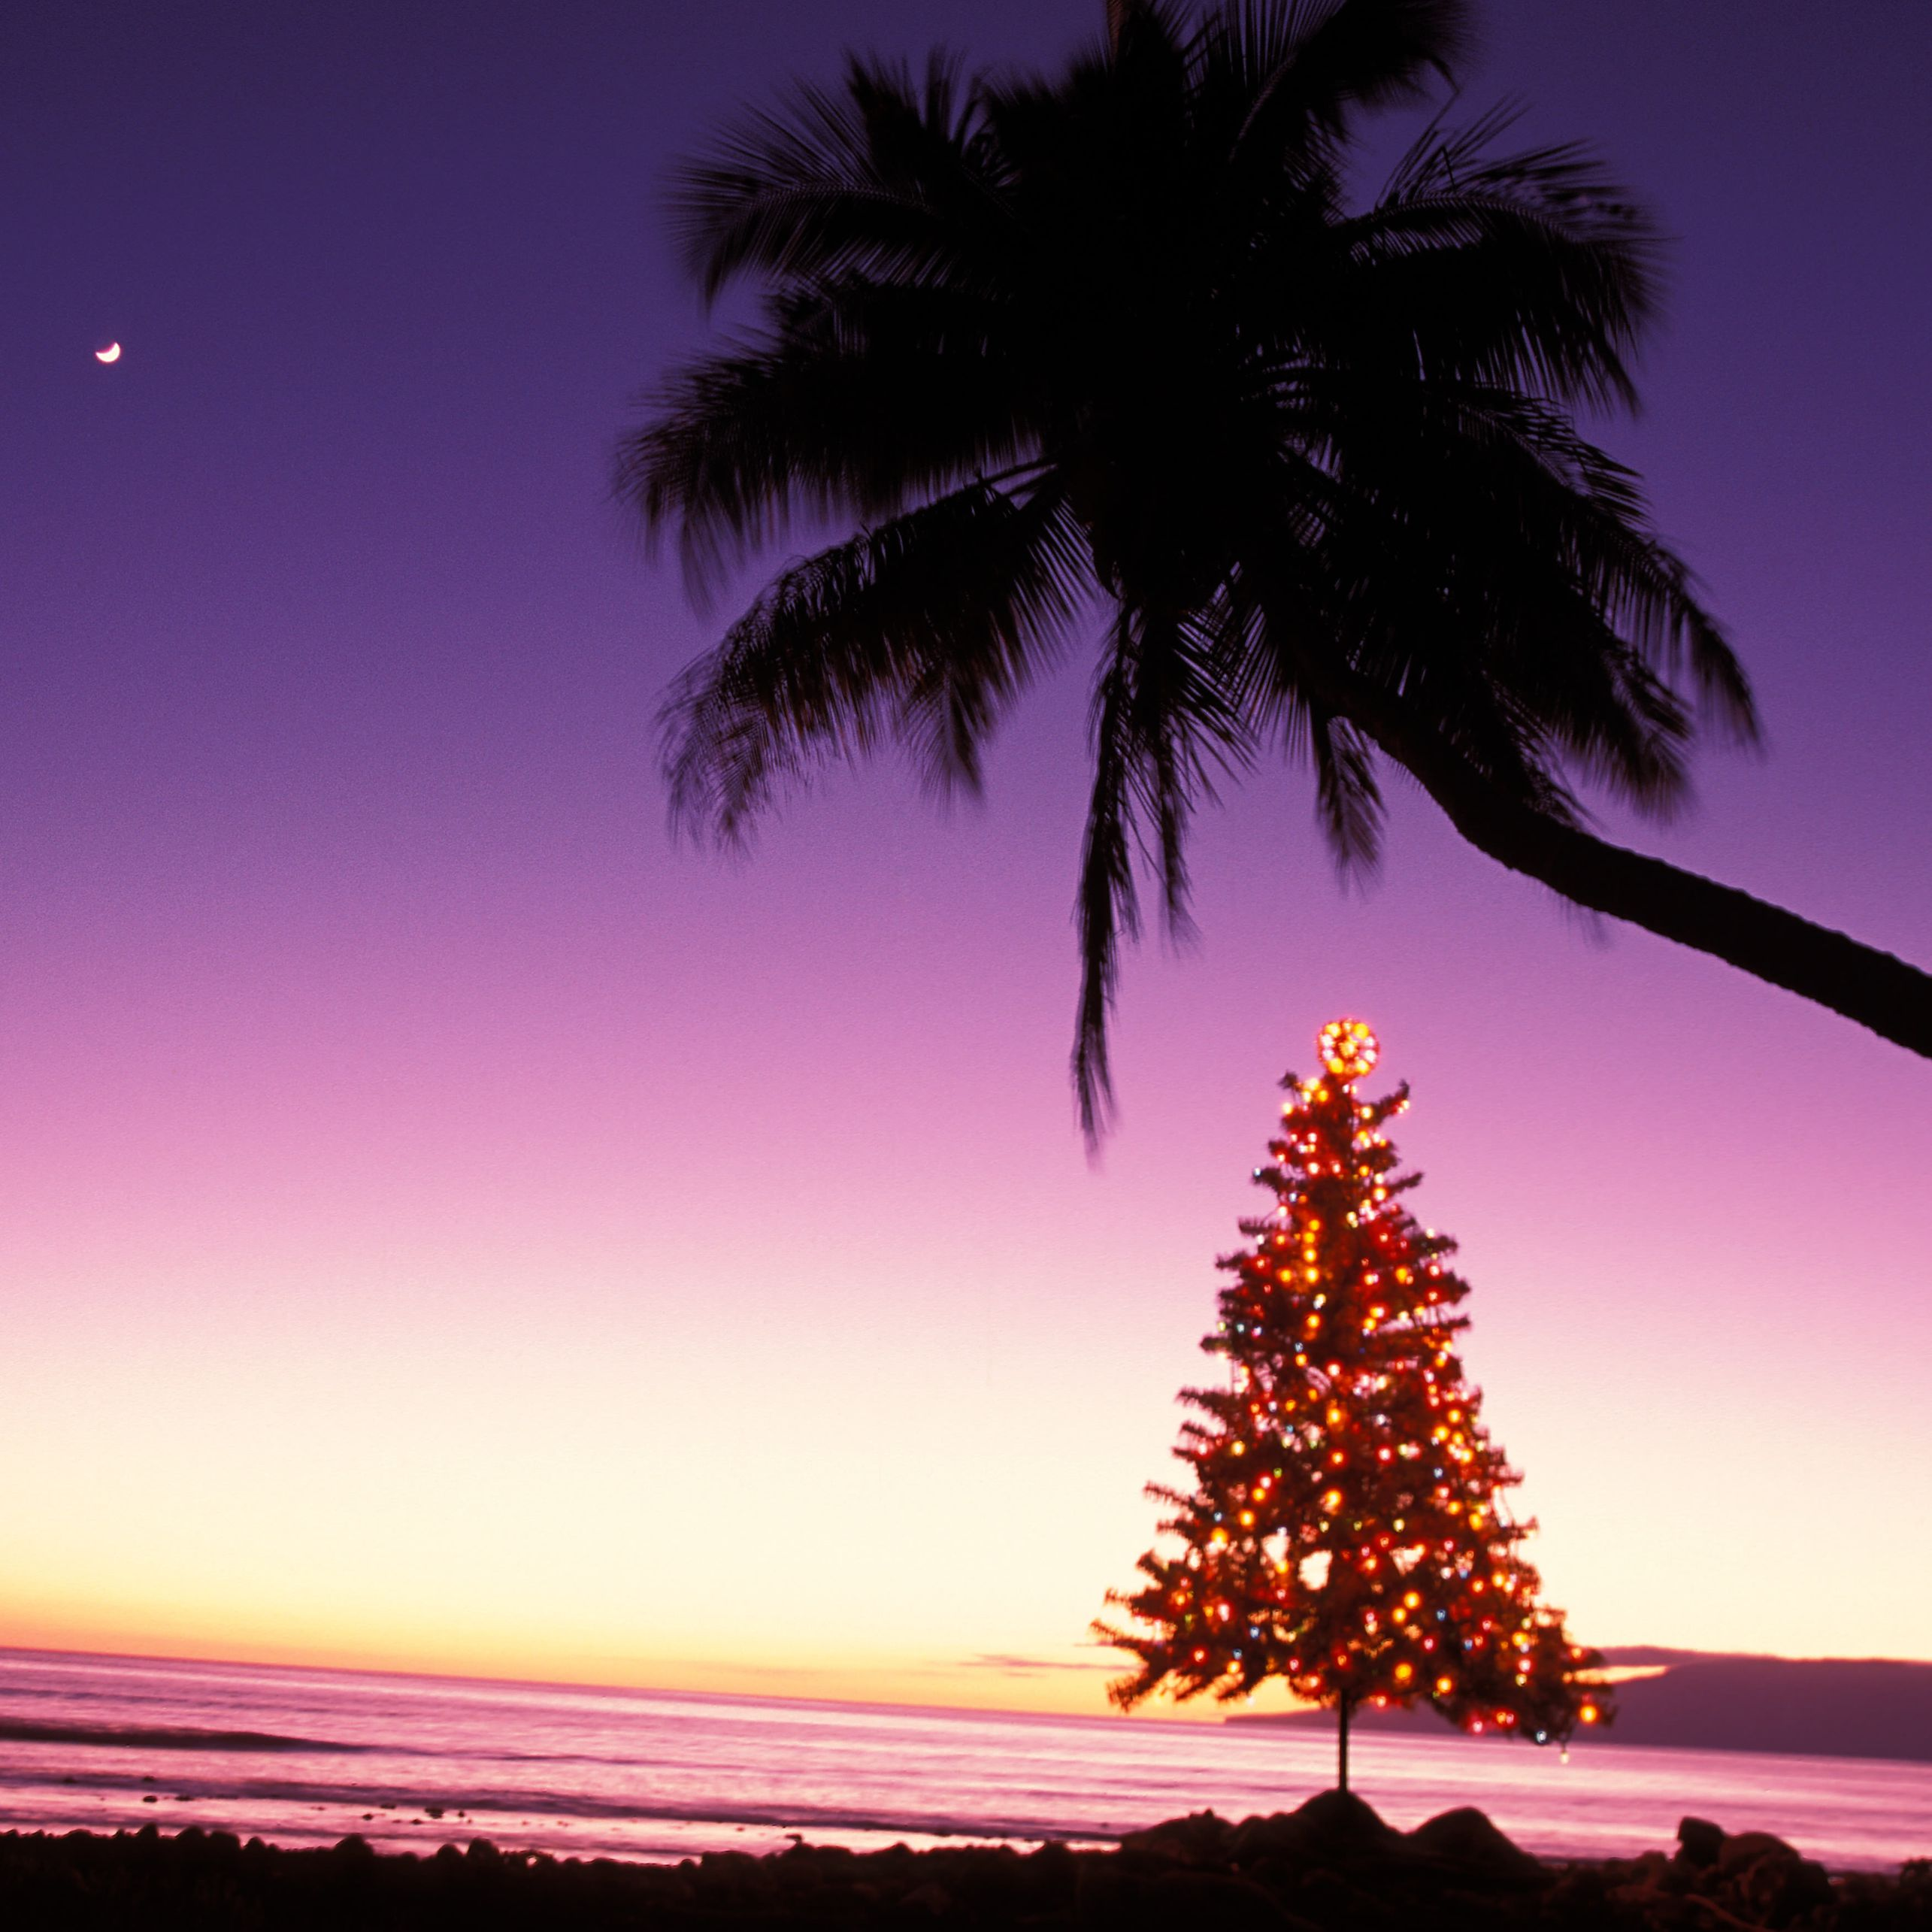 Hawaiian Christmas And New Year S Words And Phrases